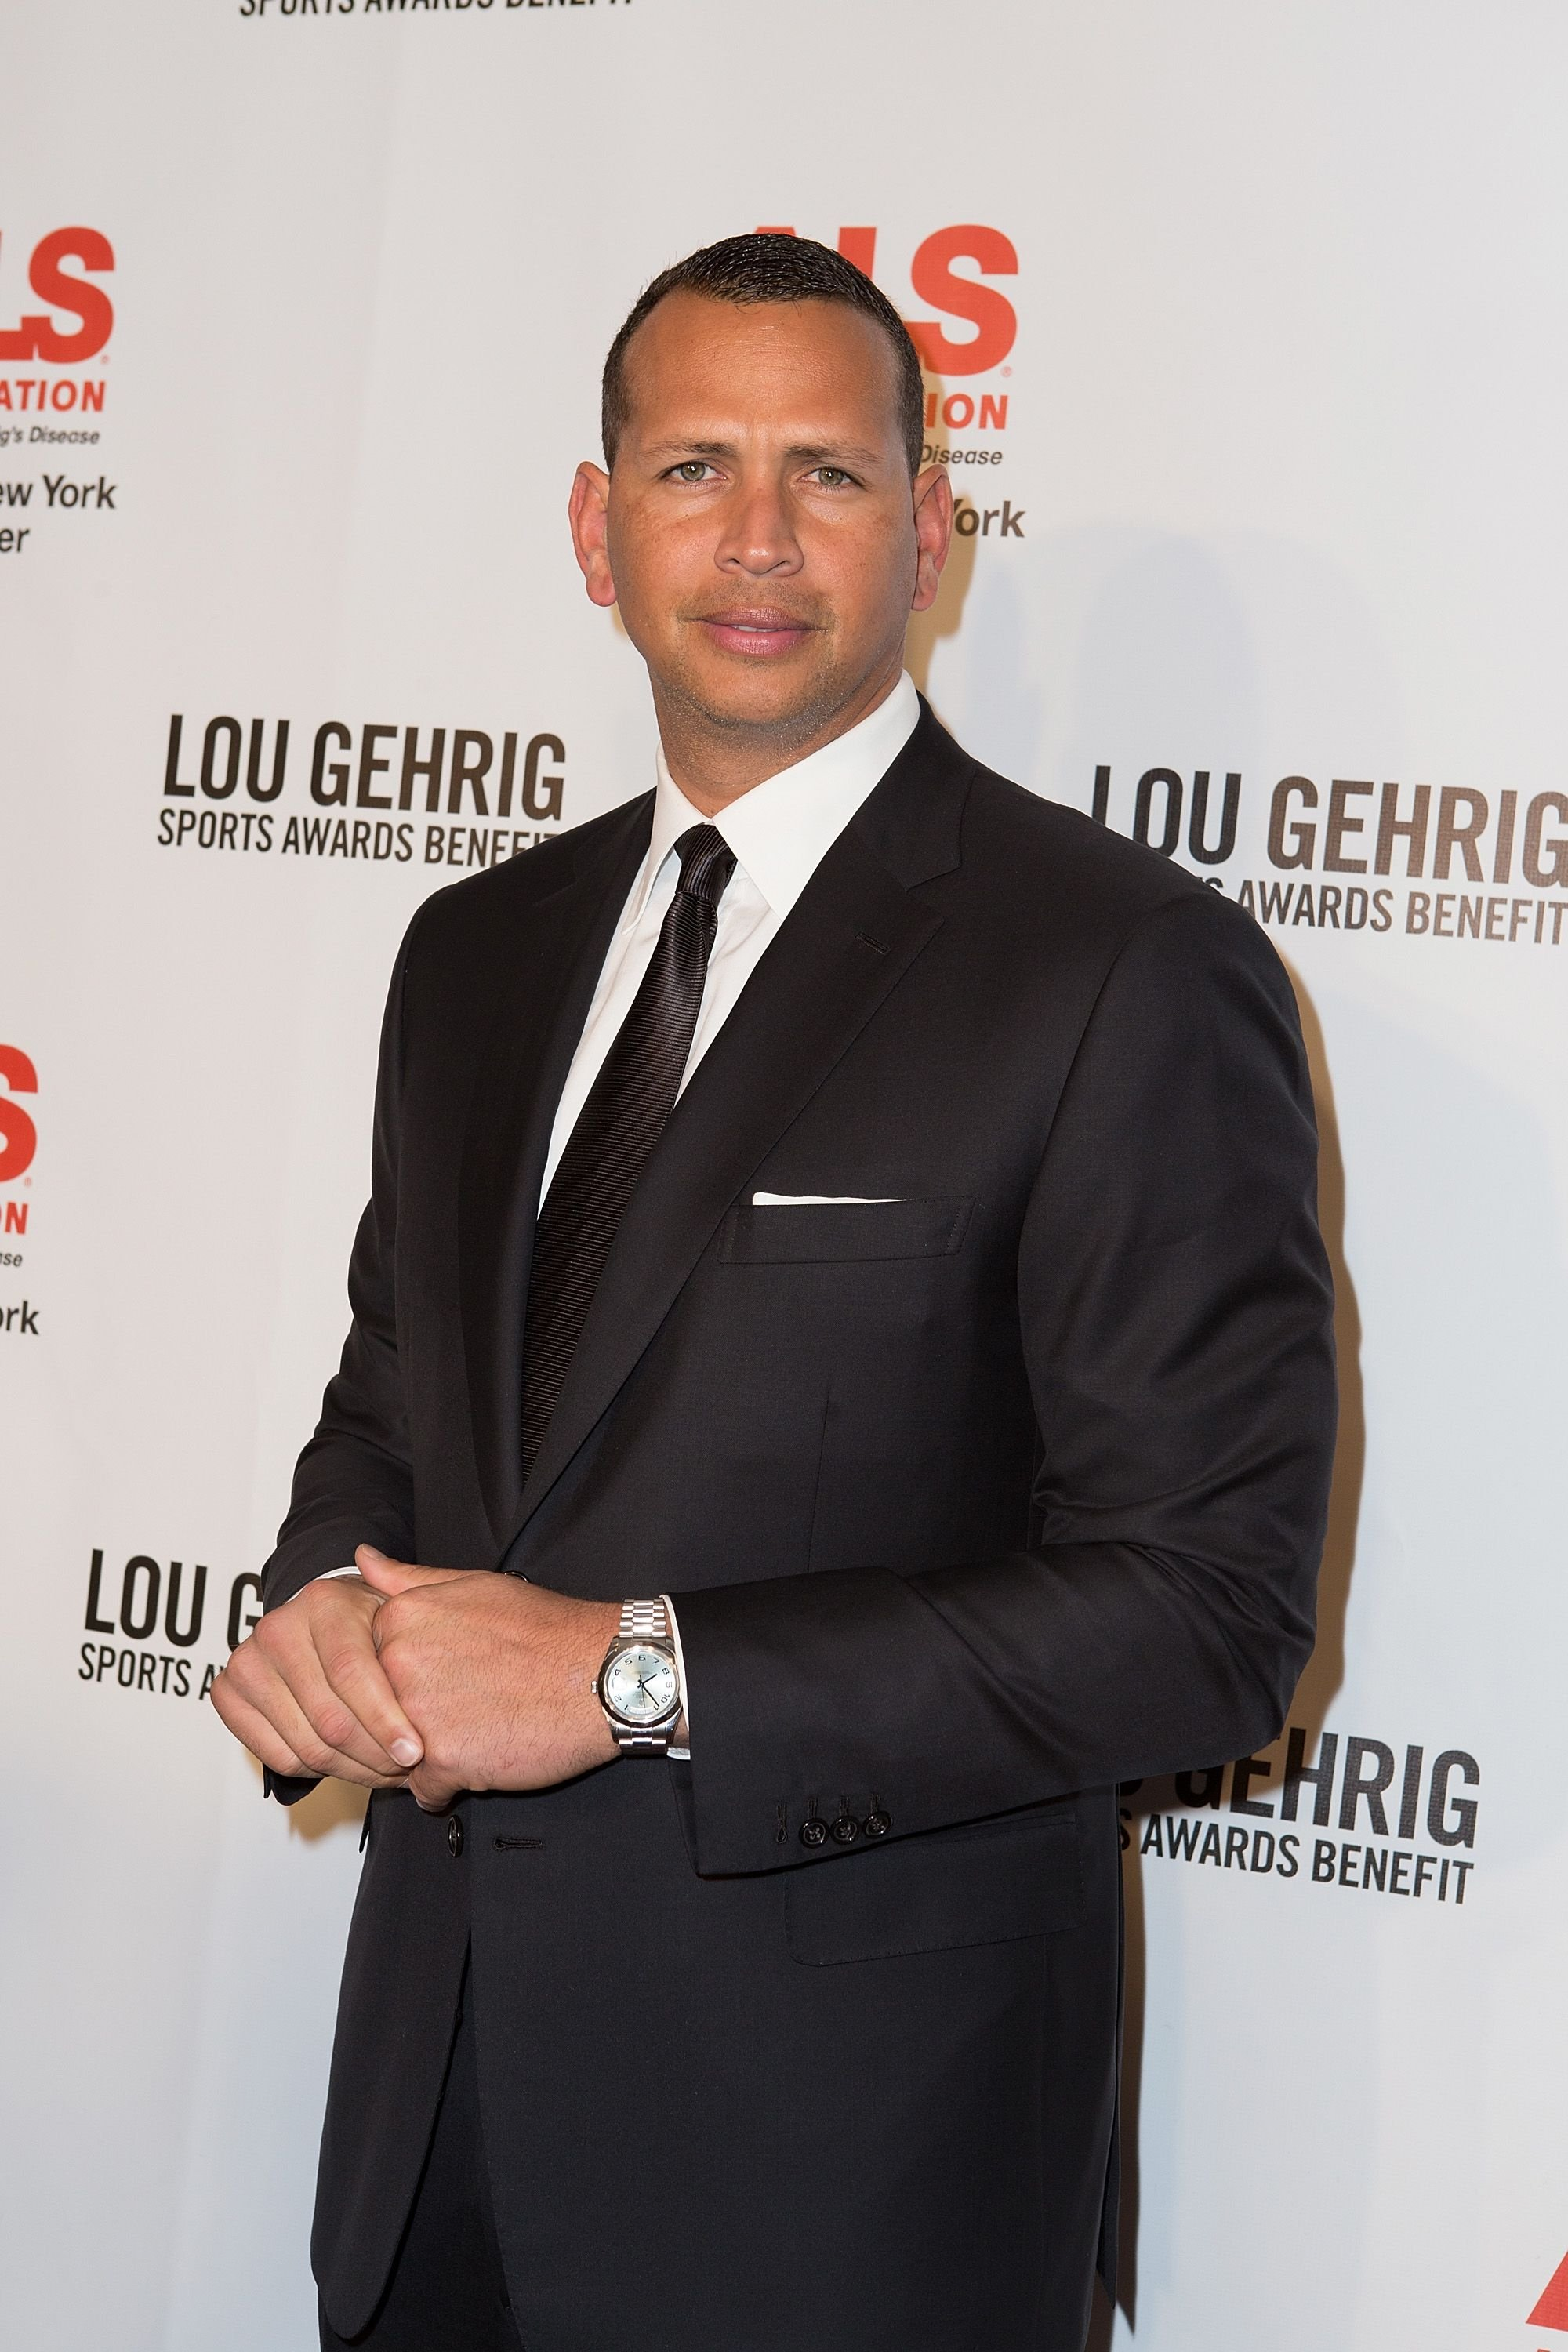 Alex Rodriguez during The ALS Association Greater New York 21st Annual Lou Gehrig Sports Awards Benefit at The New York Marriott Marquis on November 4, 2015 in New York City. | Source: Getty Images